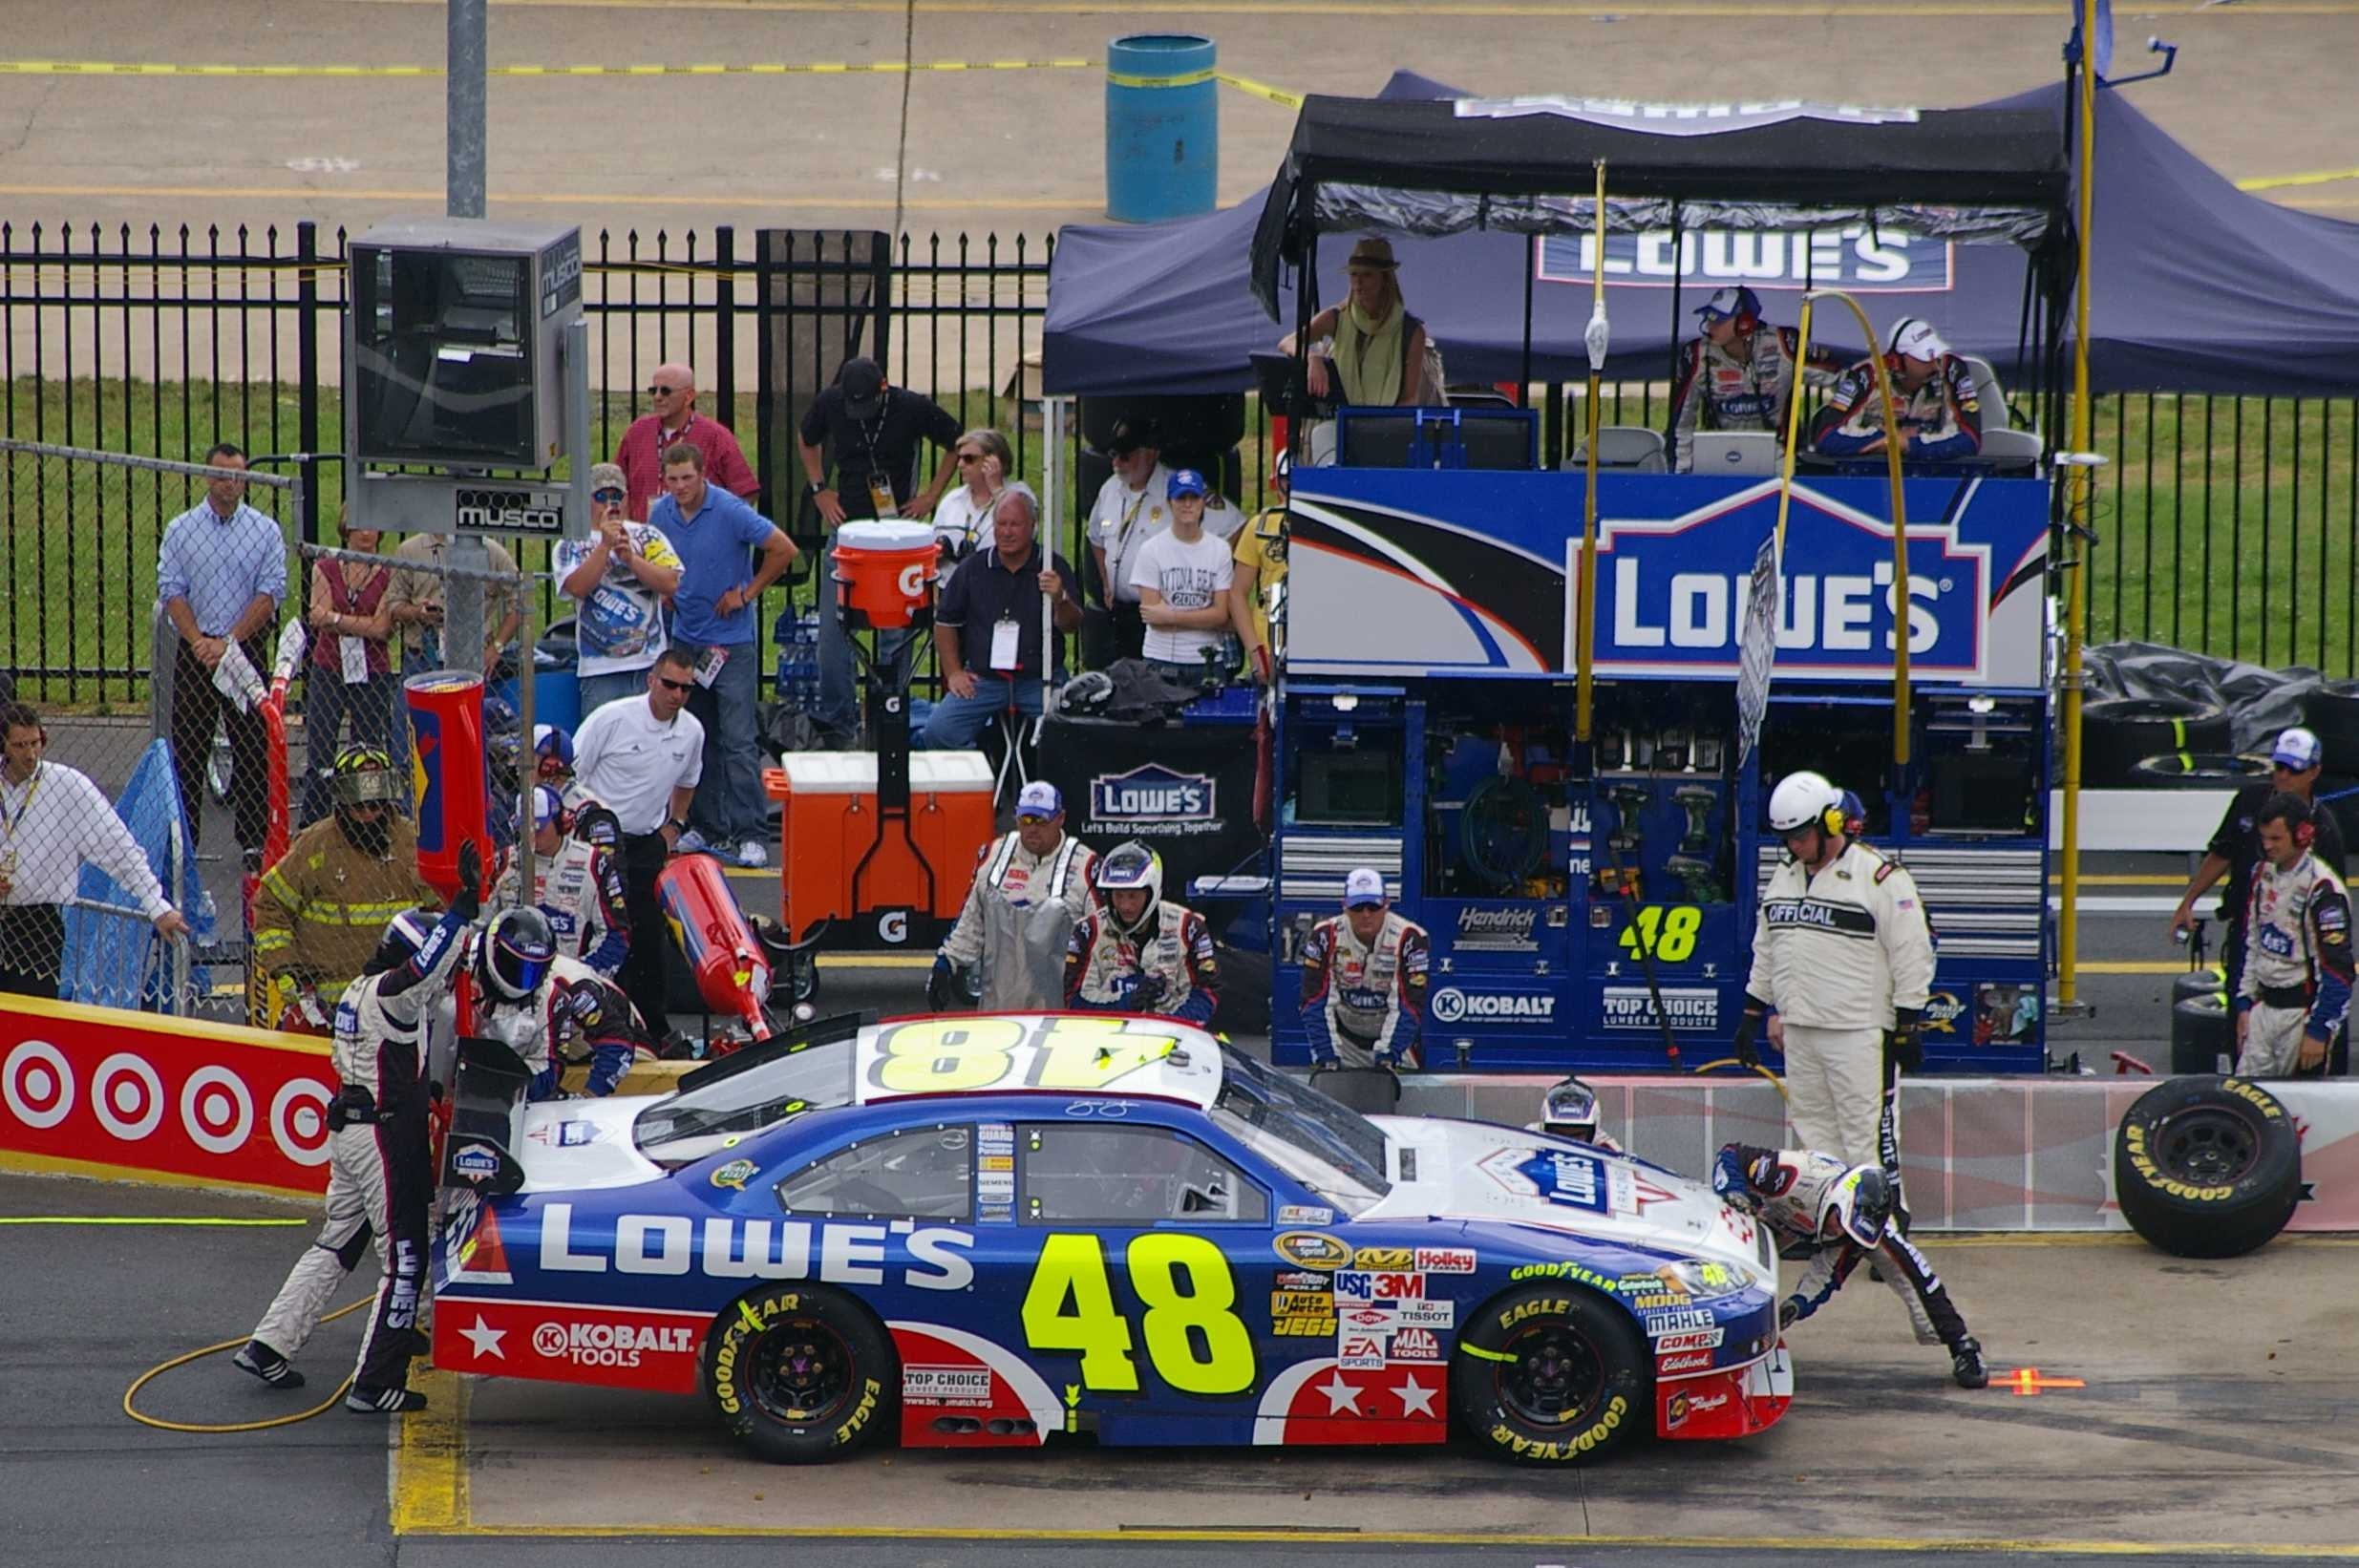 Jimmie Johnson during a pit stop during a race 